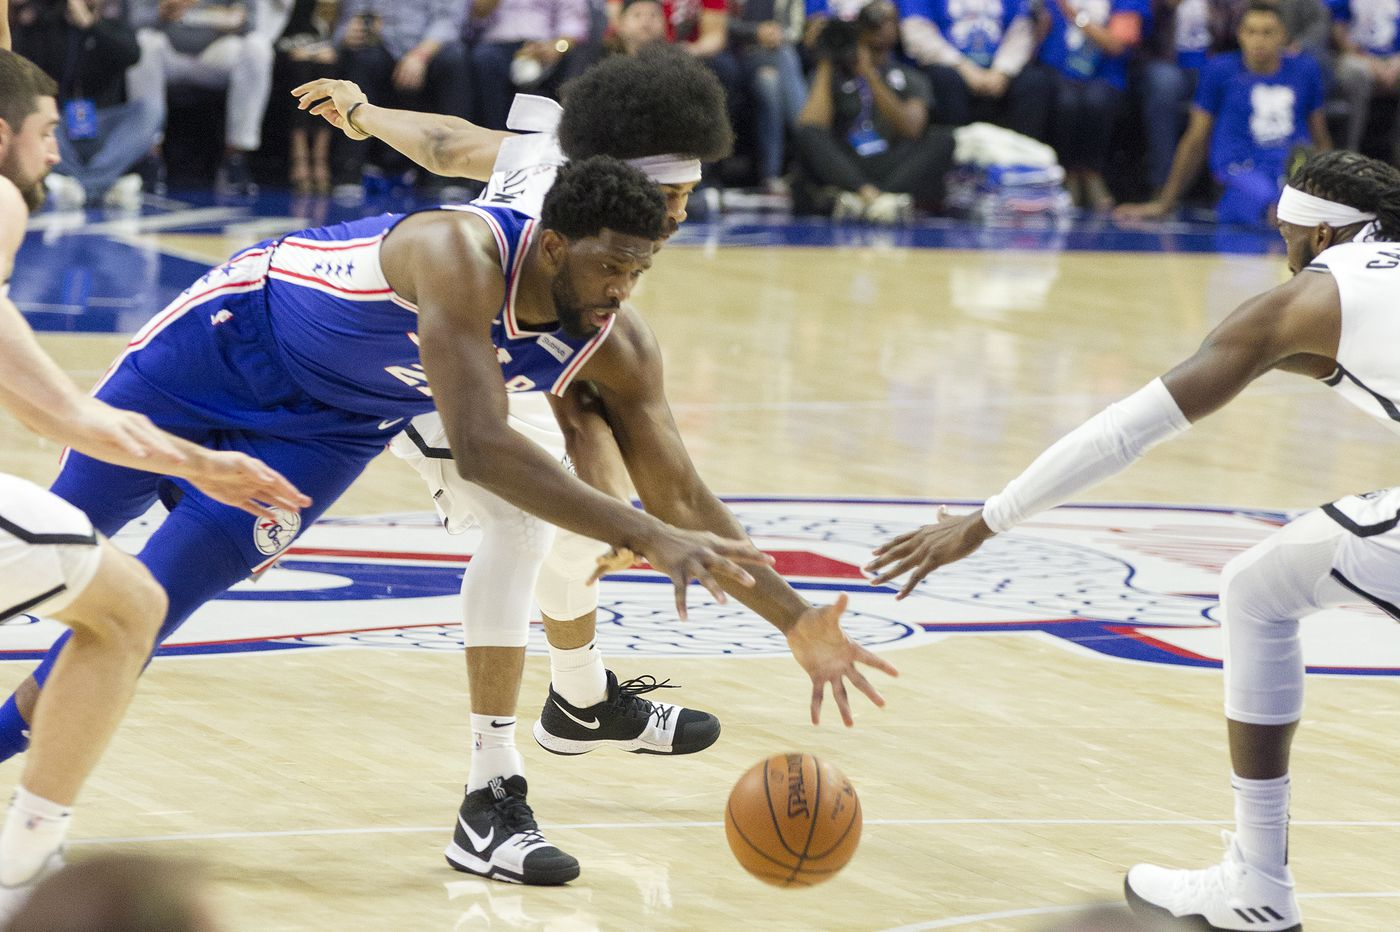 Brooklyn Nets upset Philadelphia 76ers in play-off opener